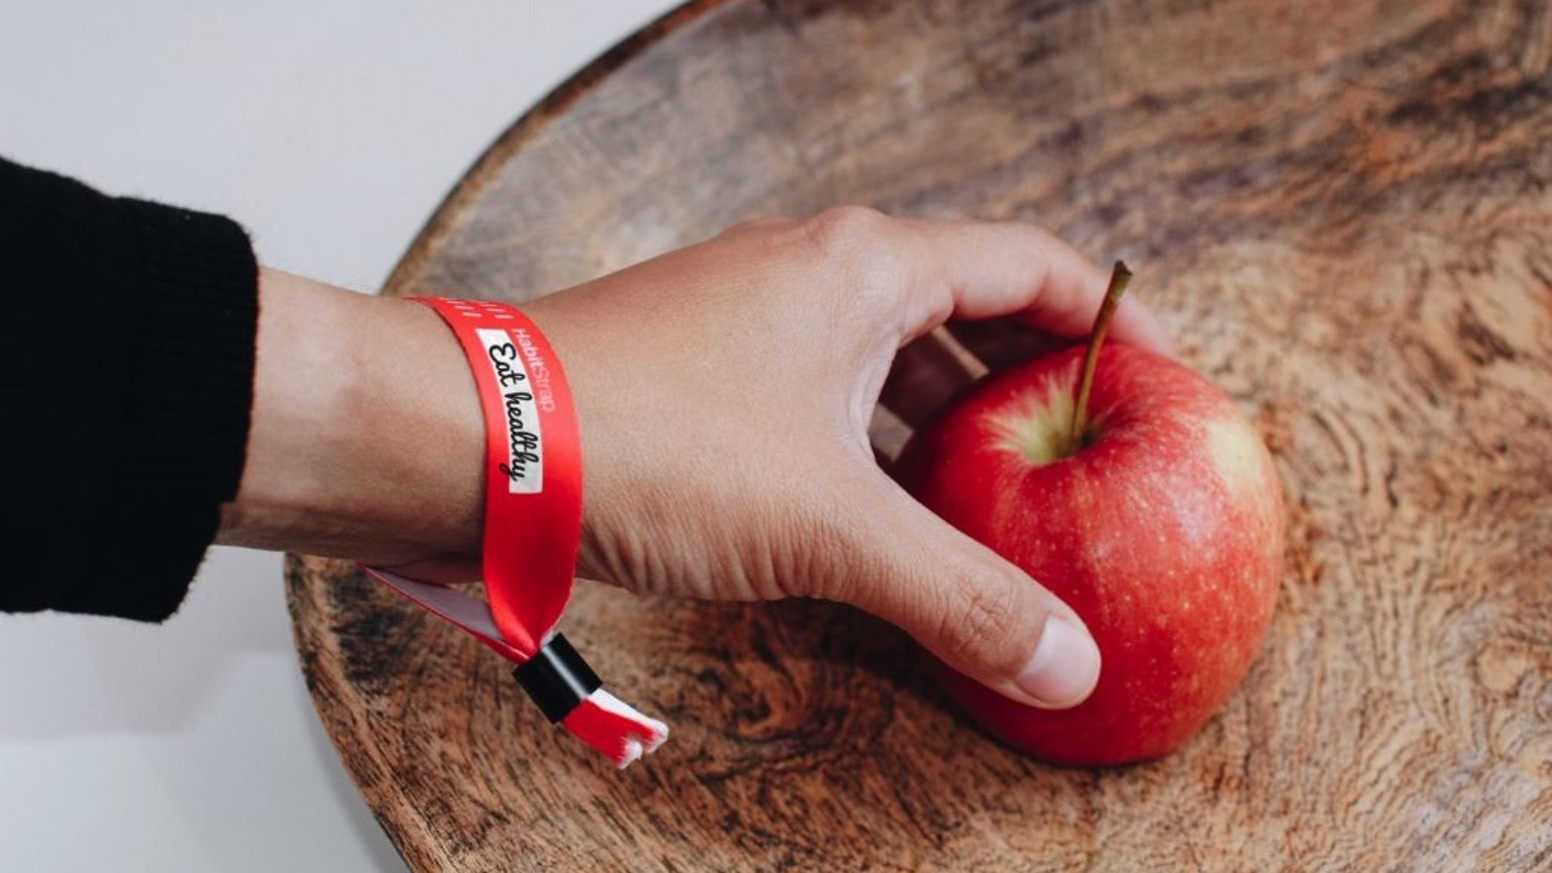 HabitStrap is a single use wristband to shape good habits in 66 days. It is worse than your mom and cheaper than any coach.